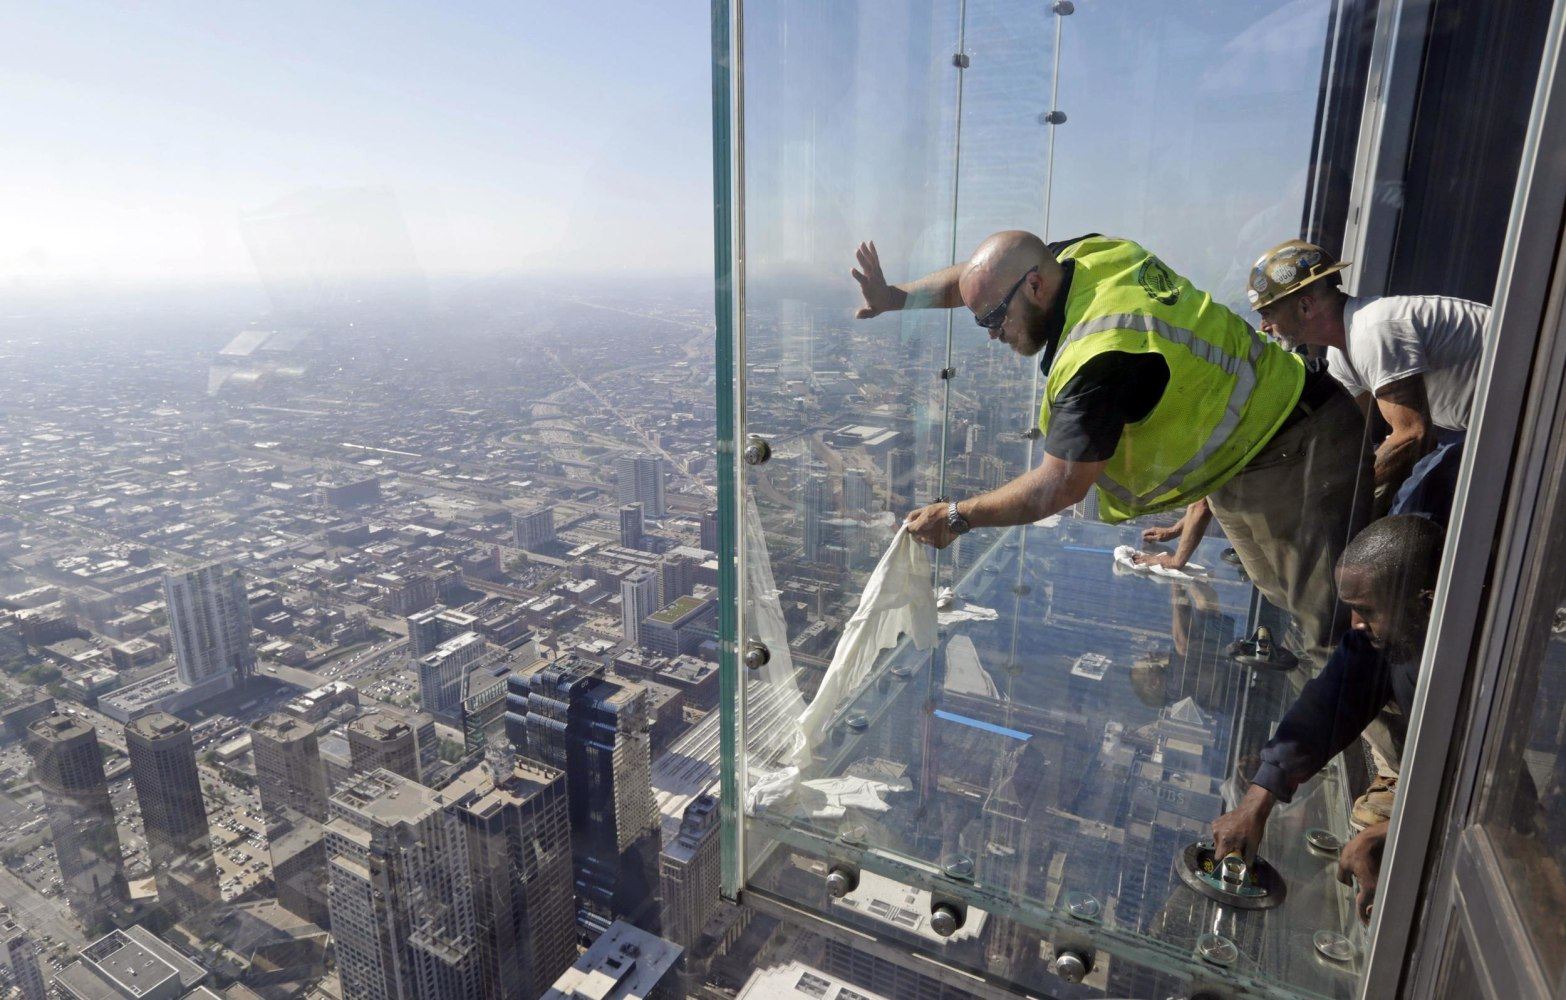 Humorous Structural Glass : Crews repair coating on skydeck s ledge after cracks